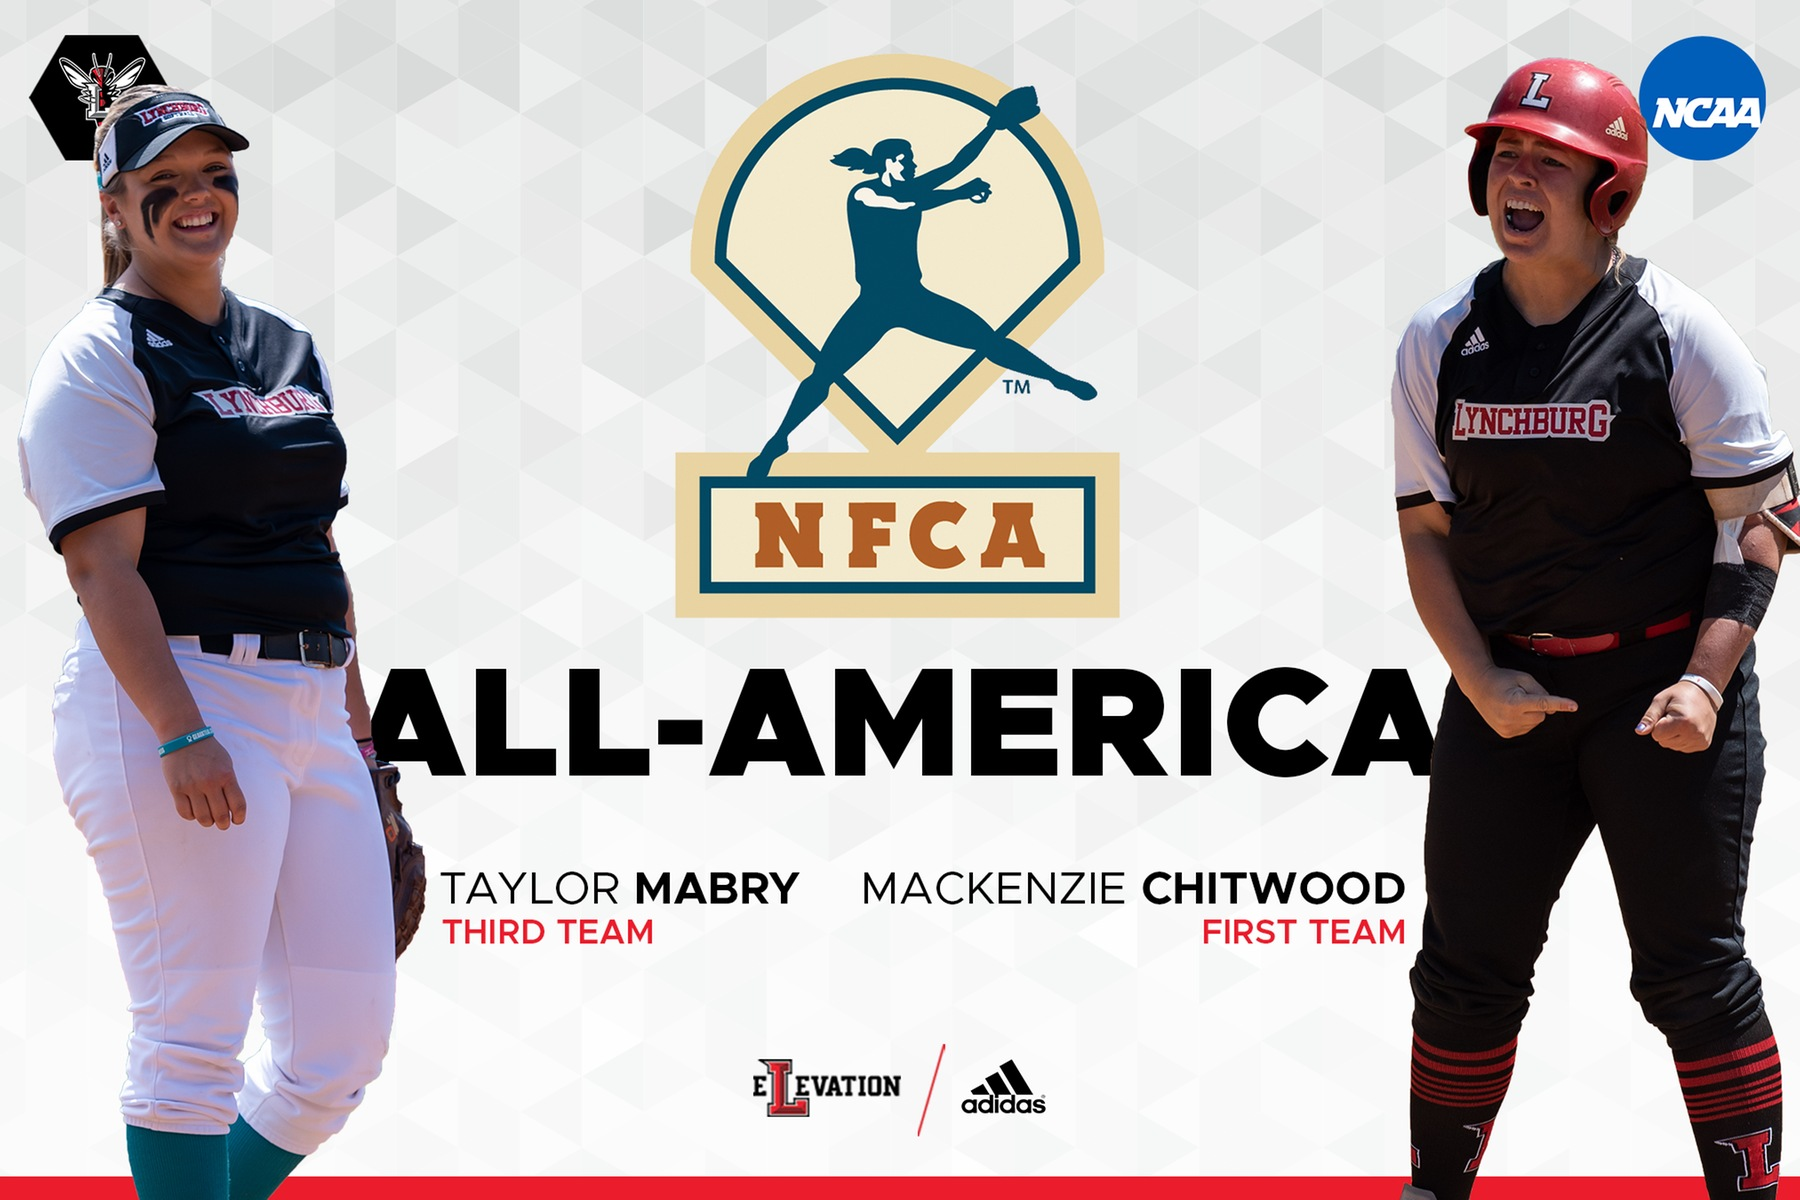 Cutout images of Taylor Mabry and Mackenzie Chitwood on white background with NFCA logo and black text, All-America